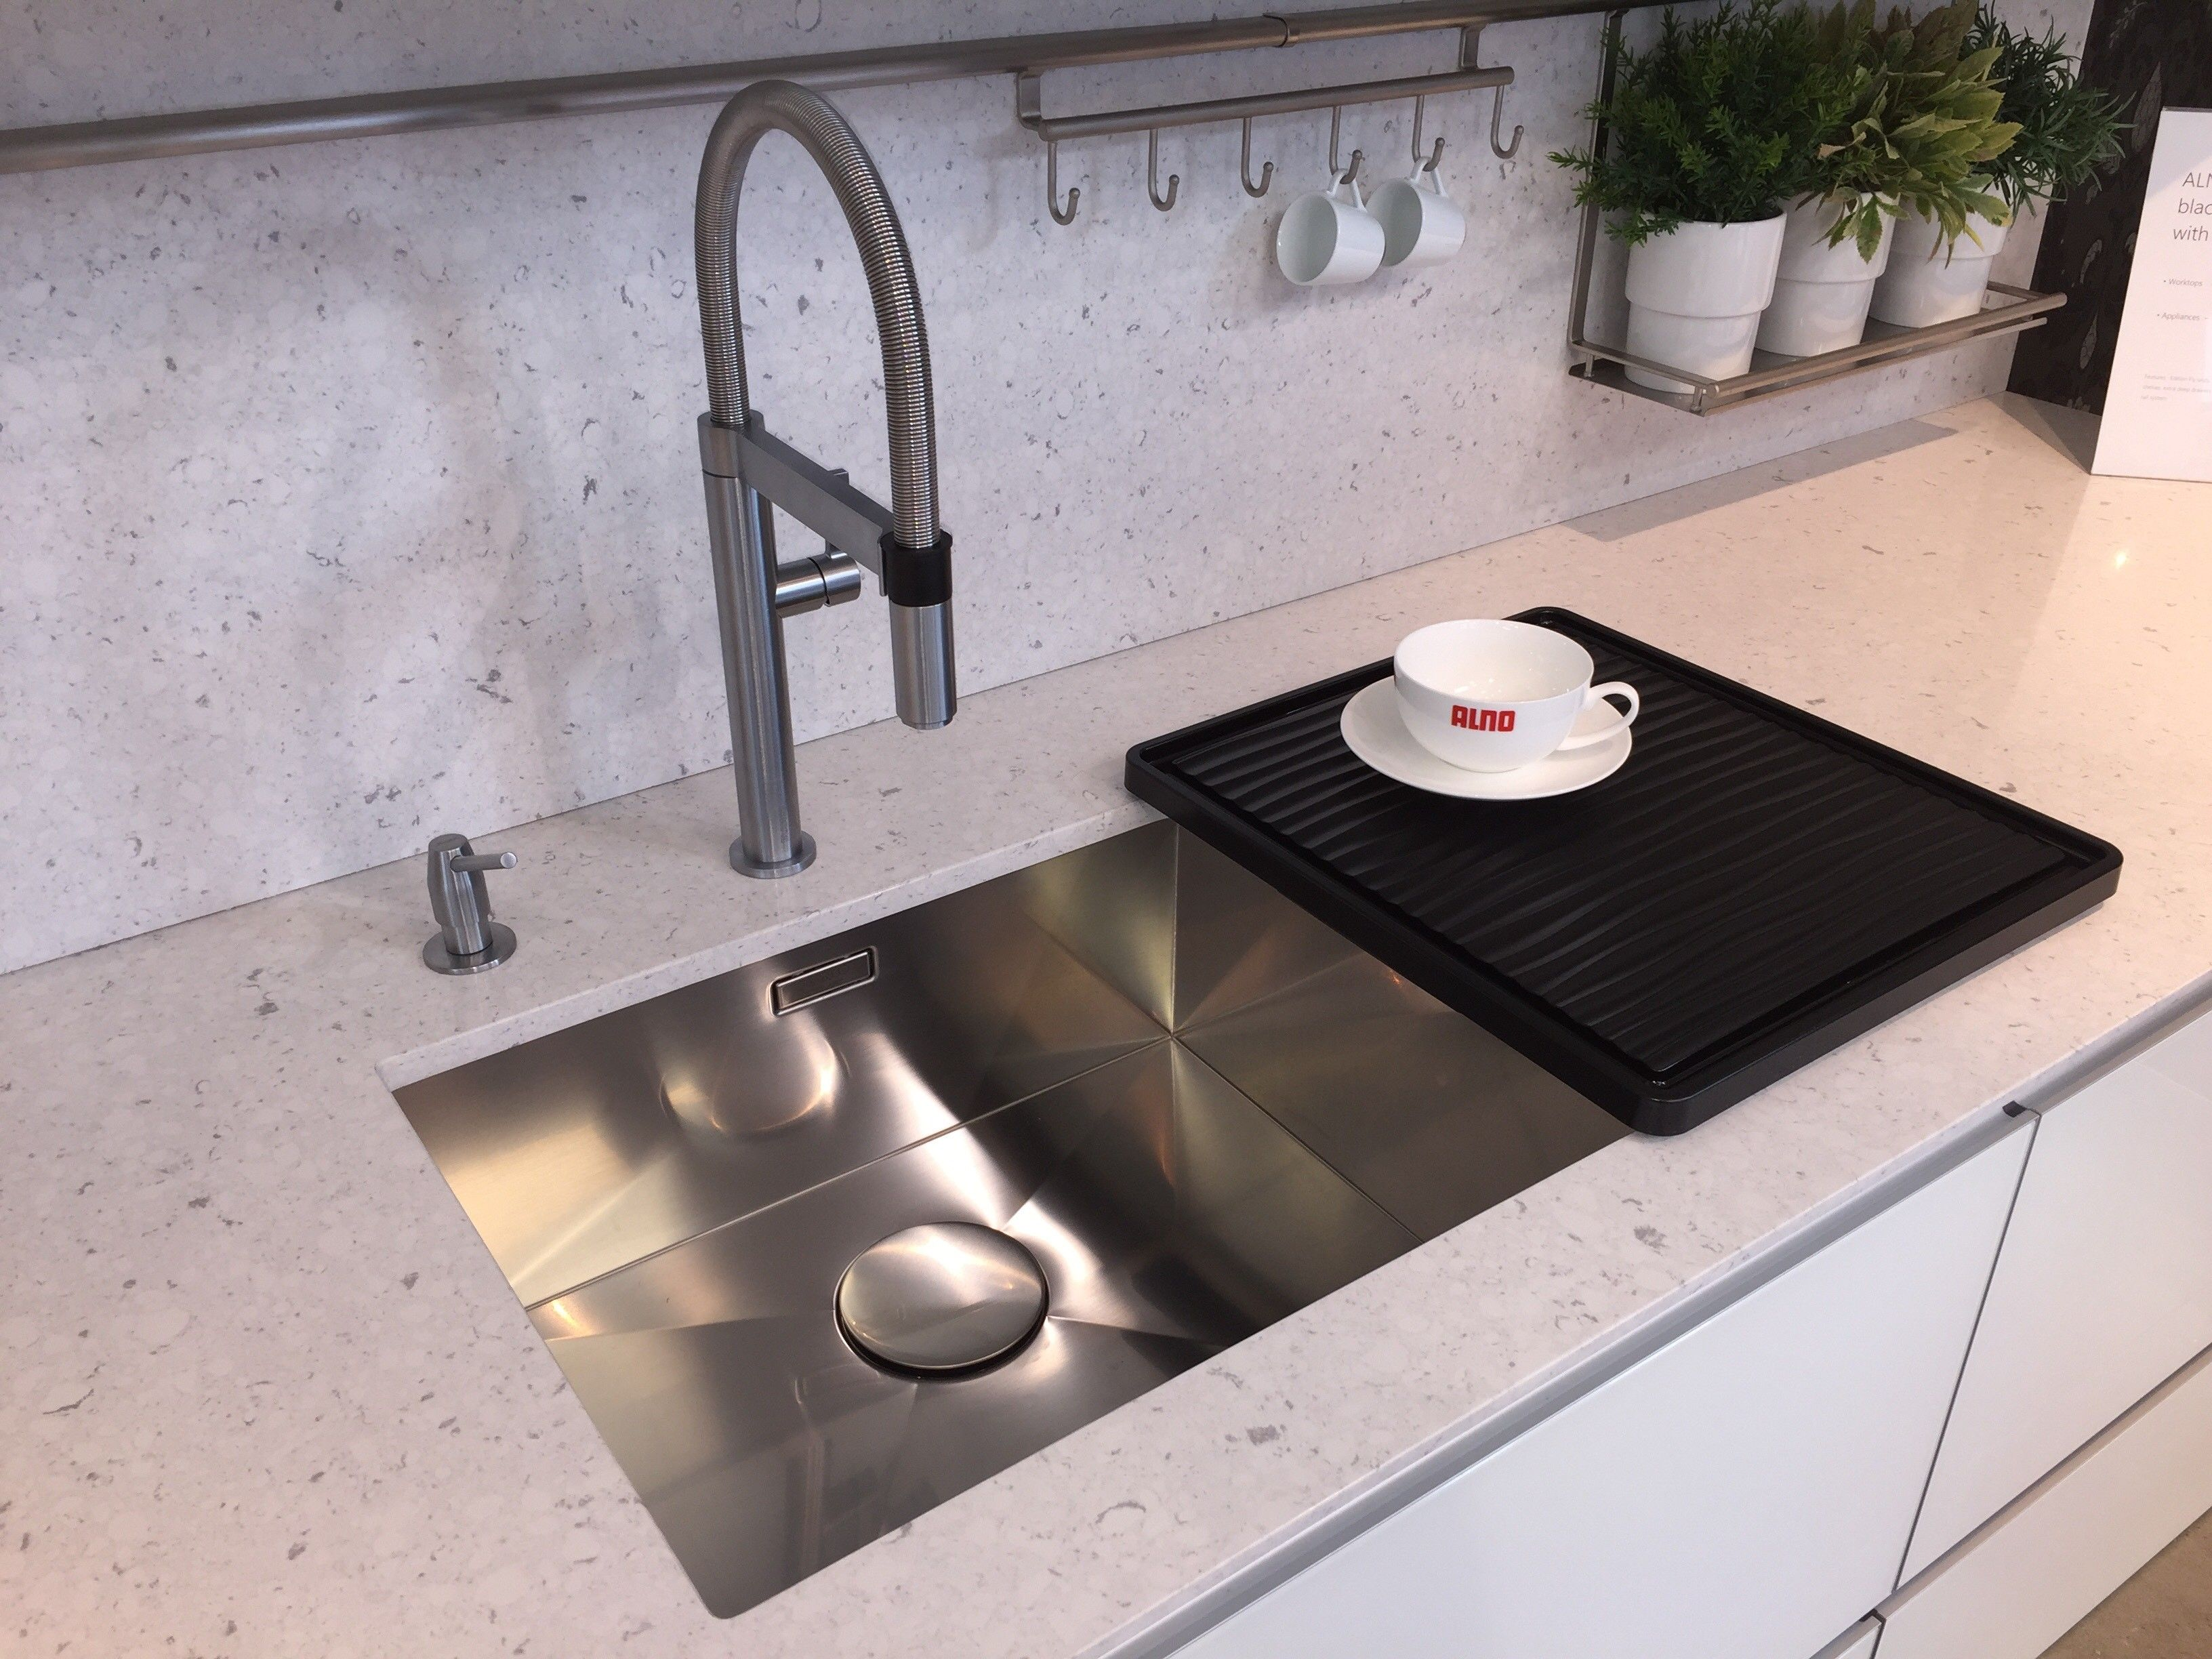 faucet chrome linus b keramik en blanco product kitchen by keramikweiss s from taps look architonic